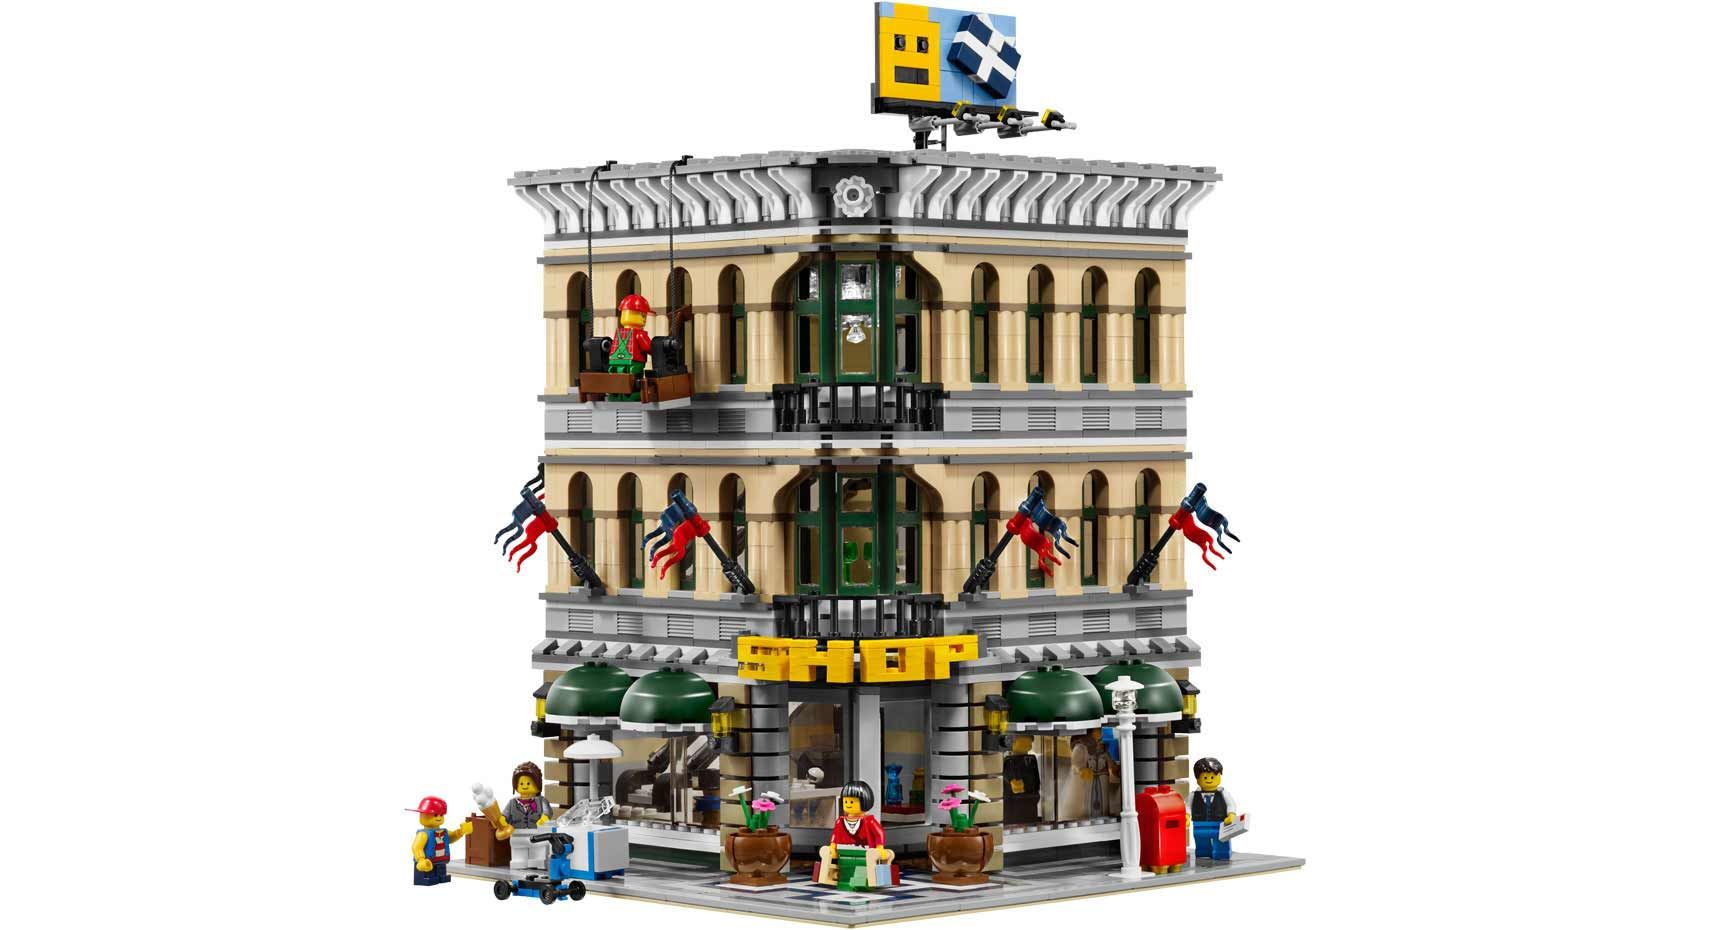 Bricklink is the world's largest online marketplace to buy and sell LEGO parts, Minifigs and sets, both new or used. Search the complete LEGO catalog & Create your own Bricklink store.